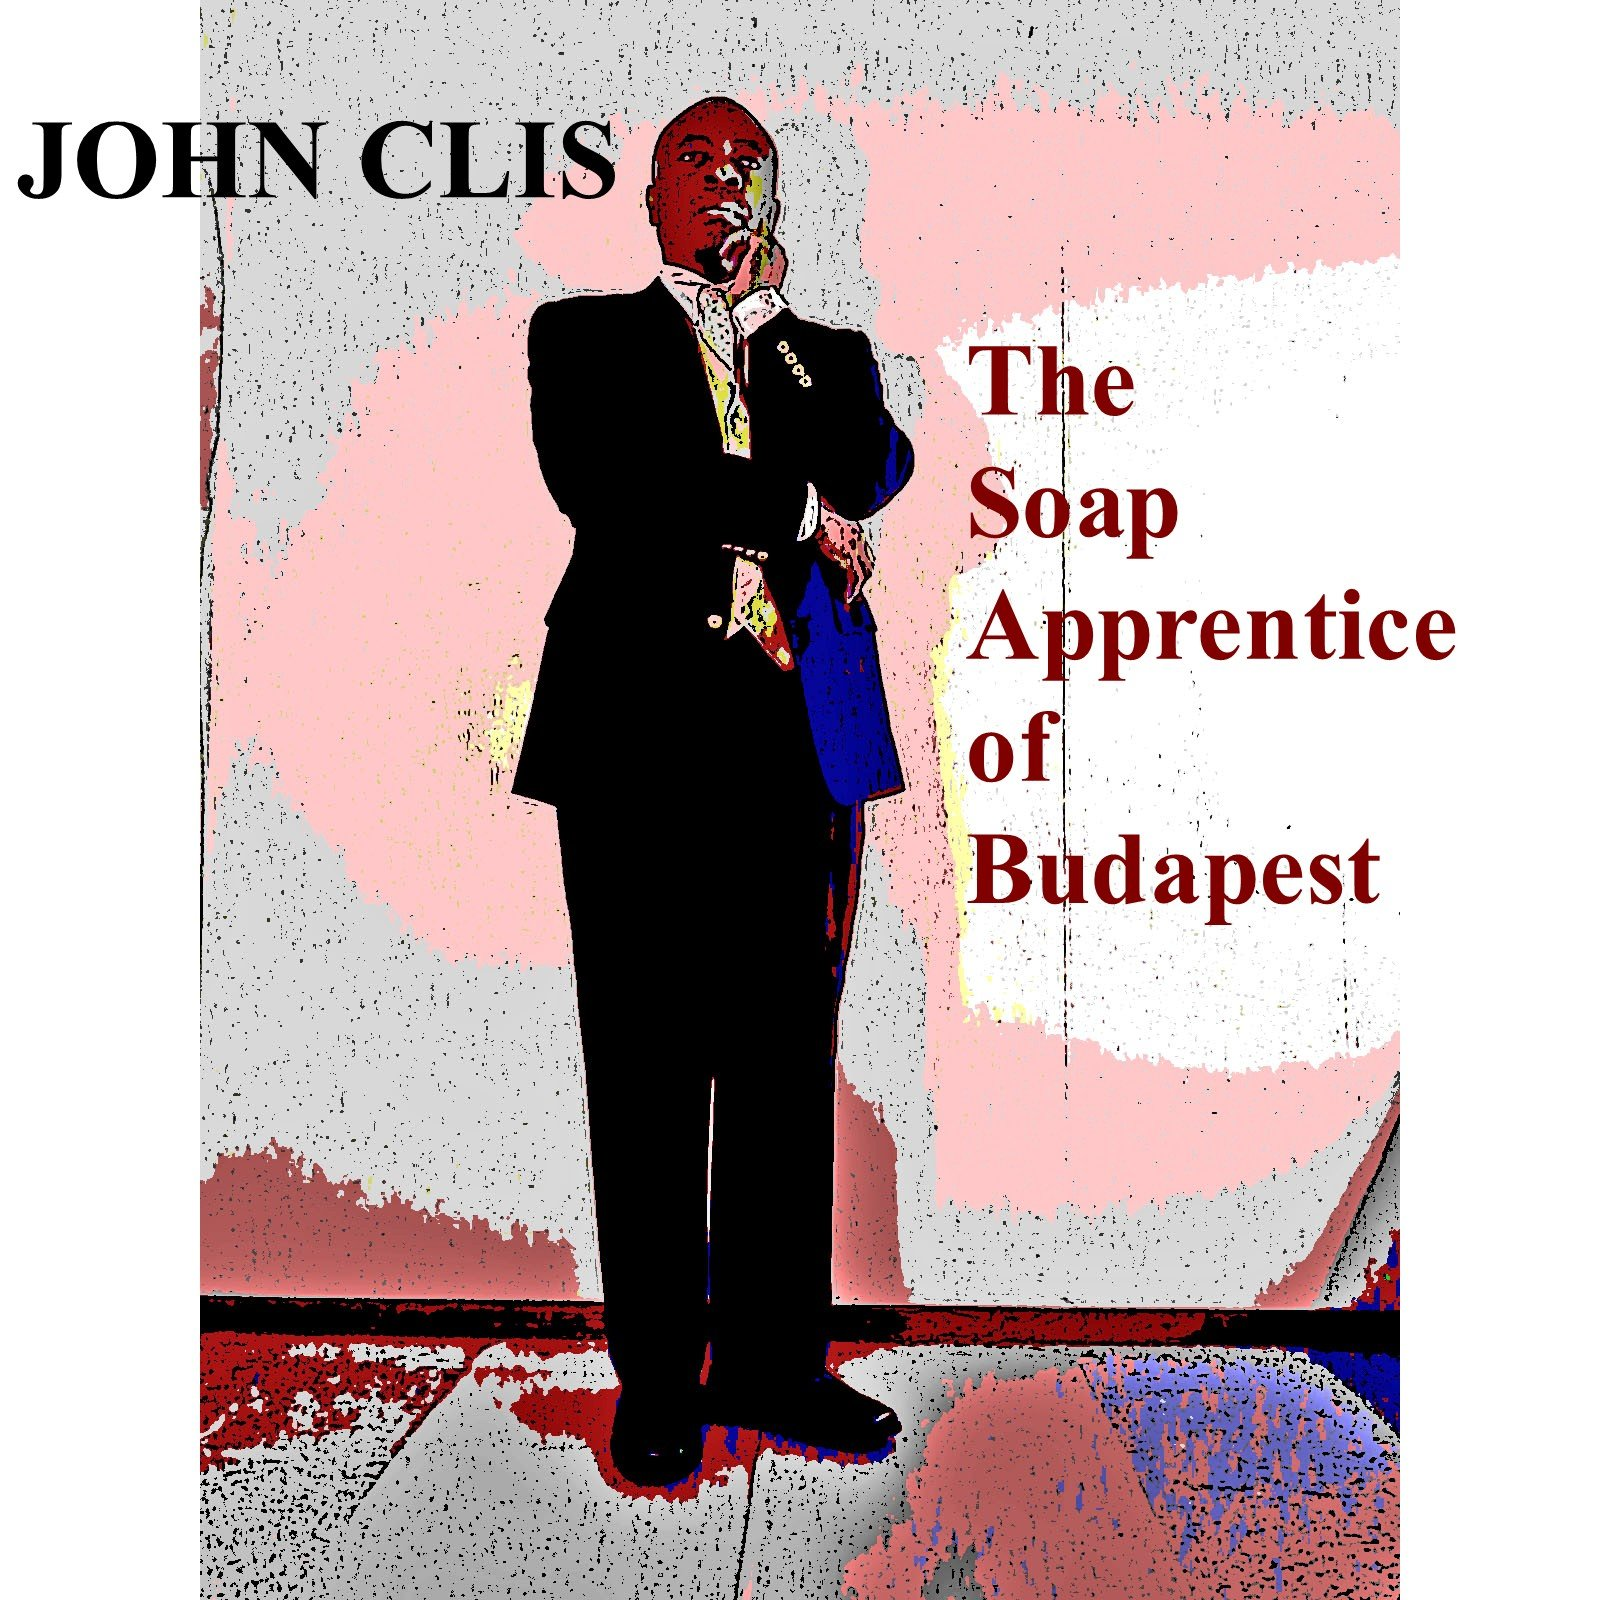 https://0201.nccdn.net/1_2/000/000/0e8/29b/John-Clis---The-Soap-Apprentice-of-Budapest---Pic-1.jpg